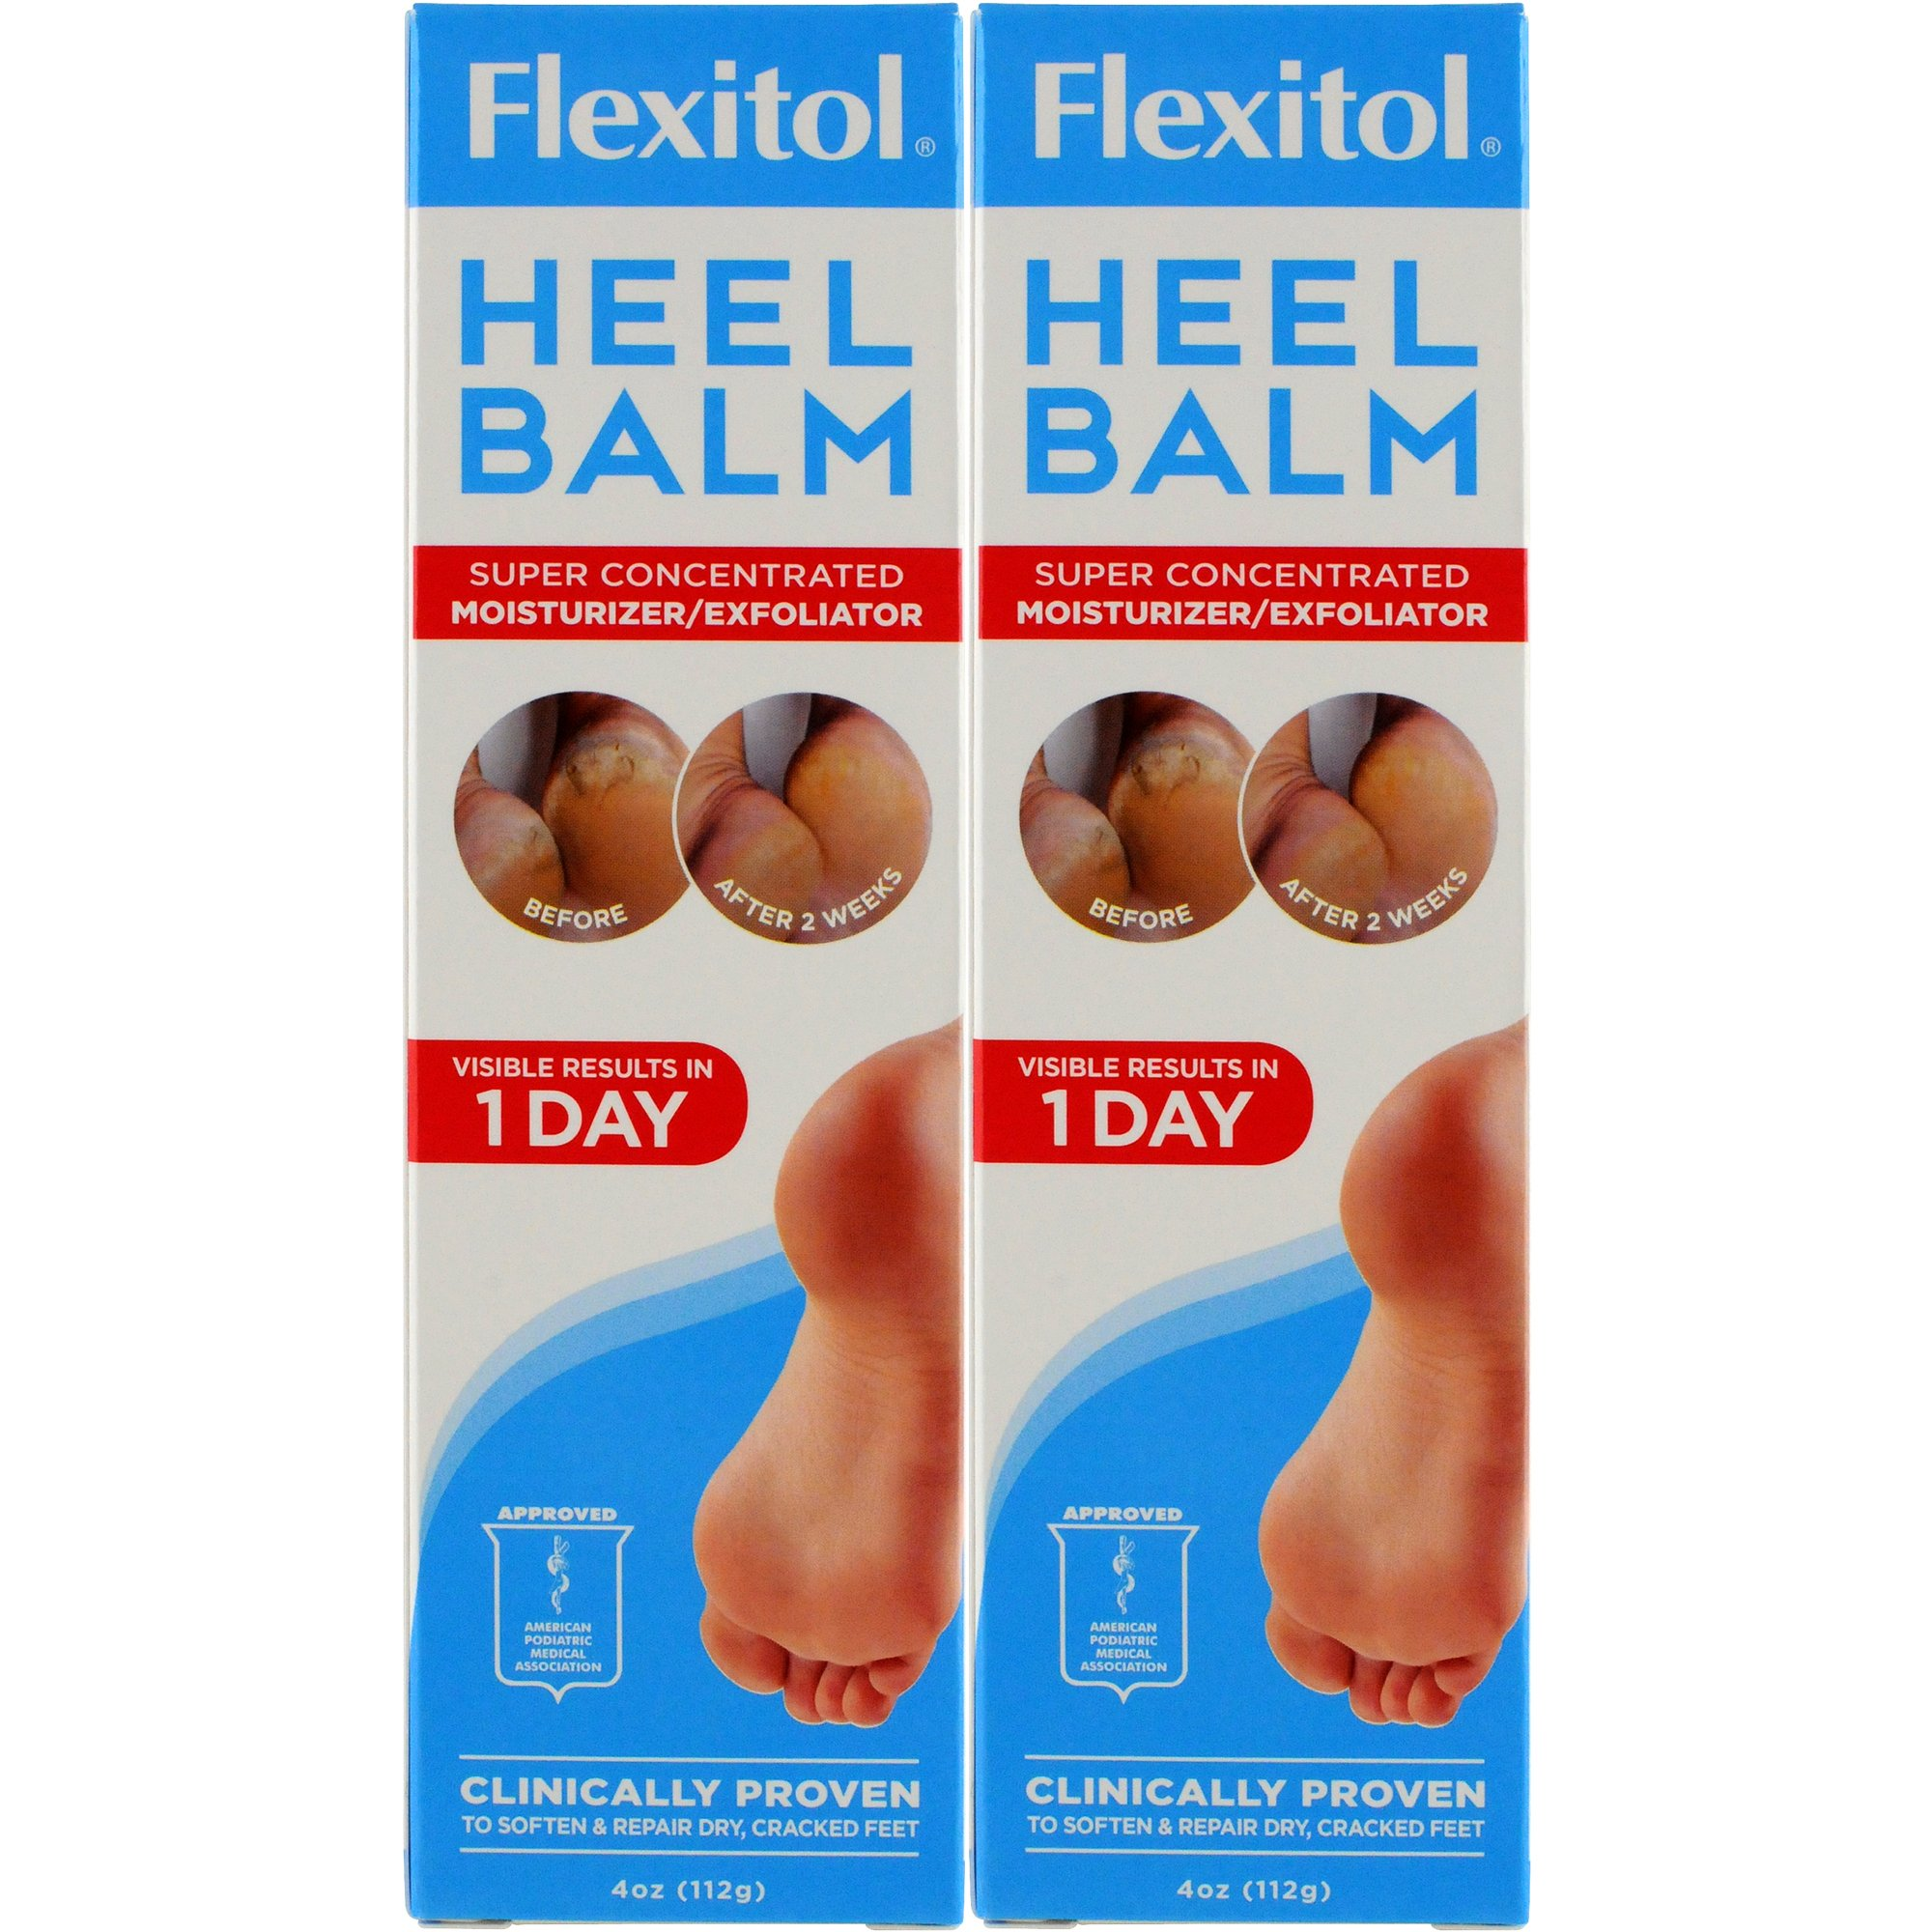 Flexitol Heel Balm Tub Rich Moisturizing & Exfoliating Foot Cream